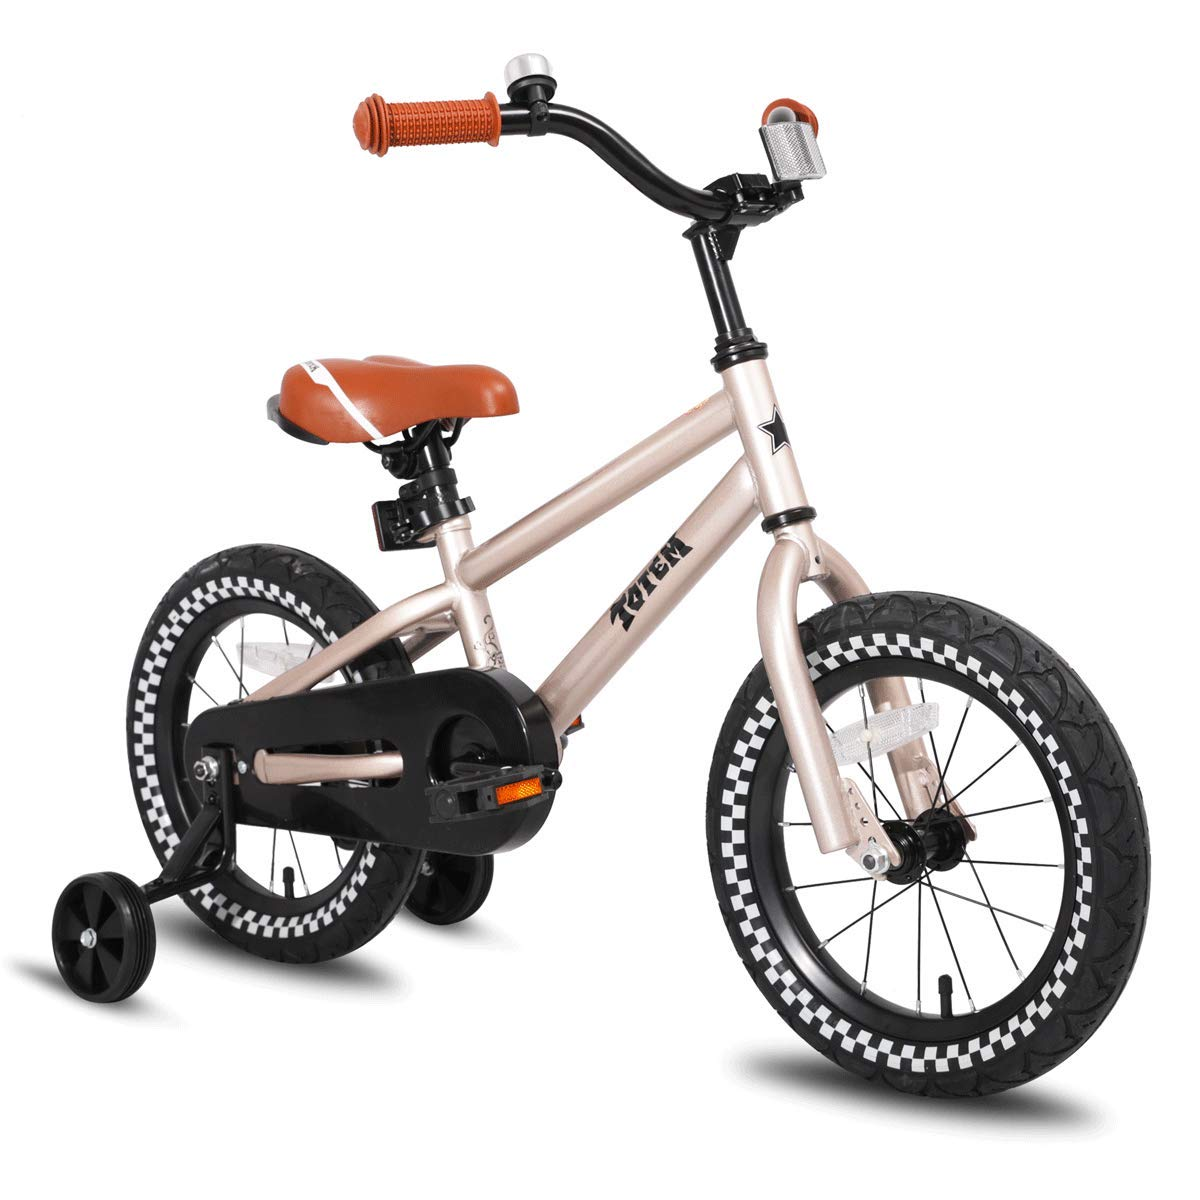 JOYSTAR Kids Bike with Training Wheels for Girls Boys, 12 14 16 Inch Red Orange Blue Silver